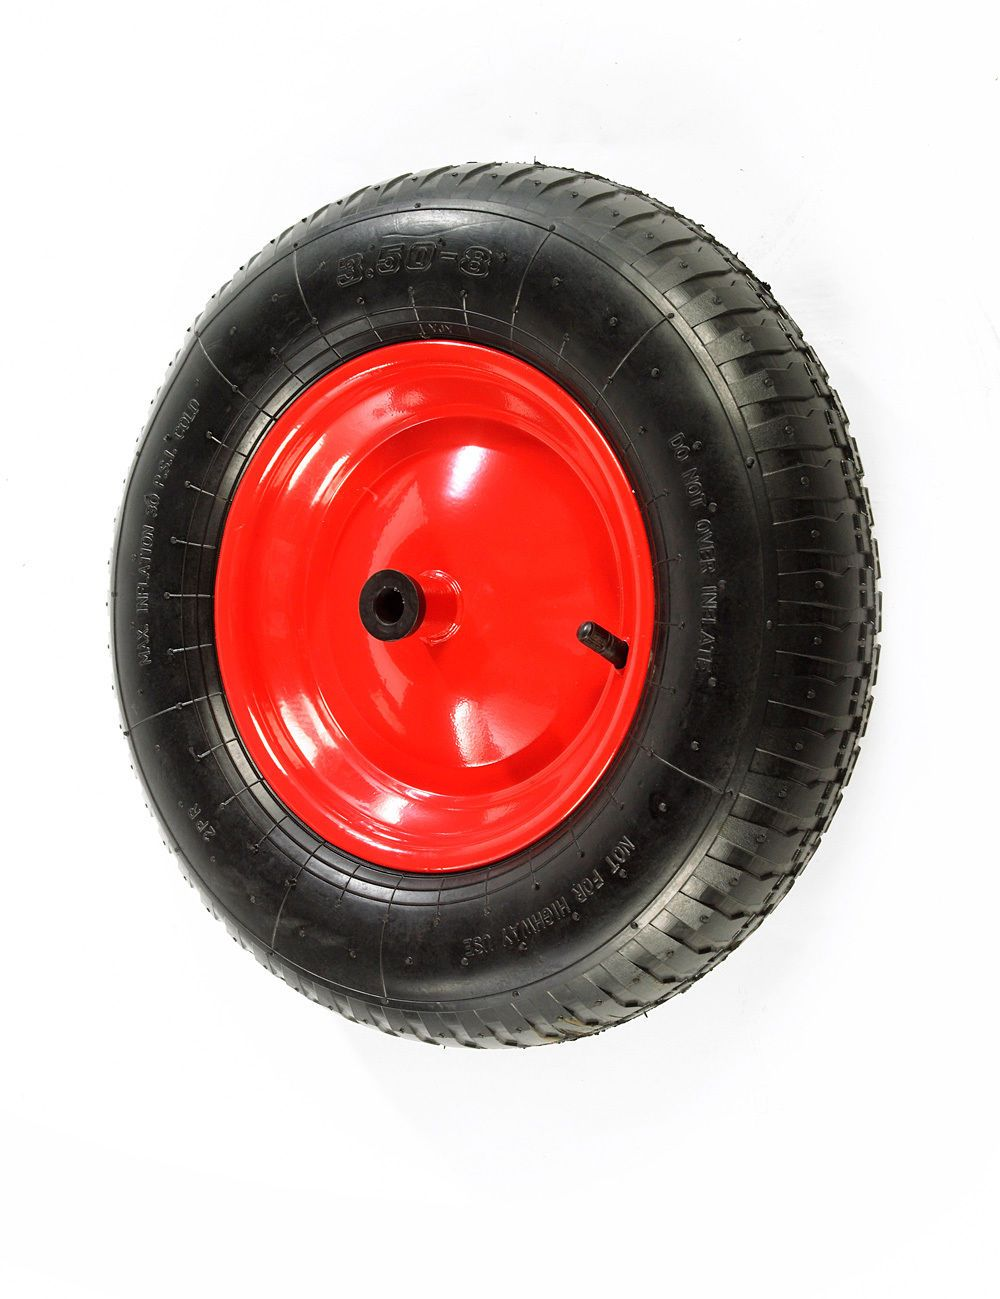 Chillington Replacement Wheelbarrow Wheel 350mm Ebay Wheelbarrow Wheels Wheelbarrow Wheelbarrow Garden